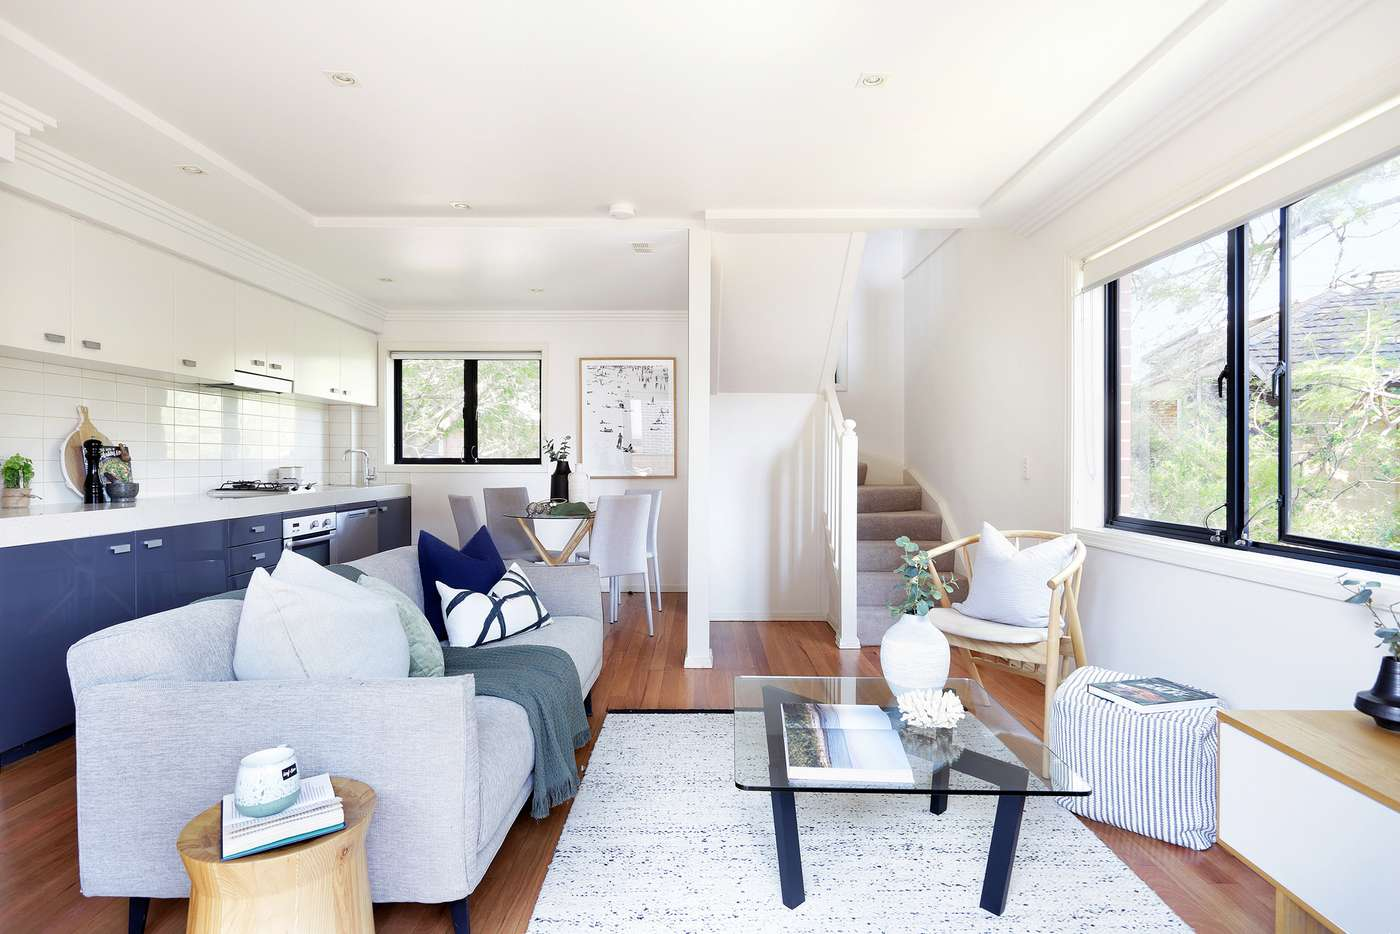 Main view of Homely apartment listing, 8/37 Midway Drive, Maroubra NSW 2035